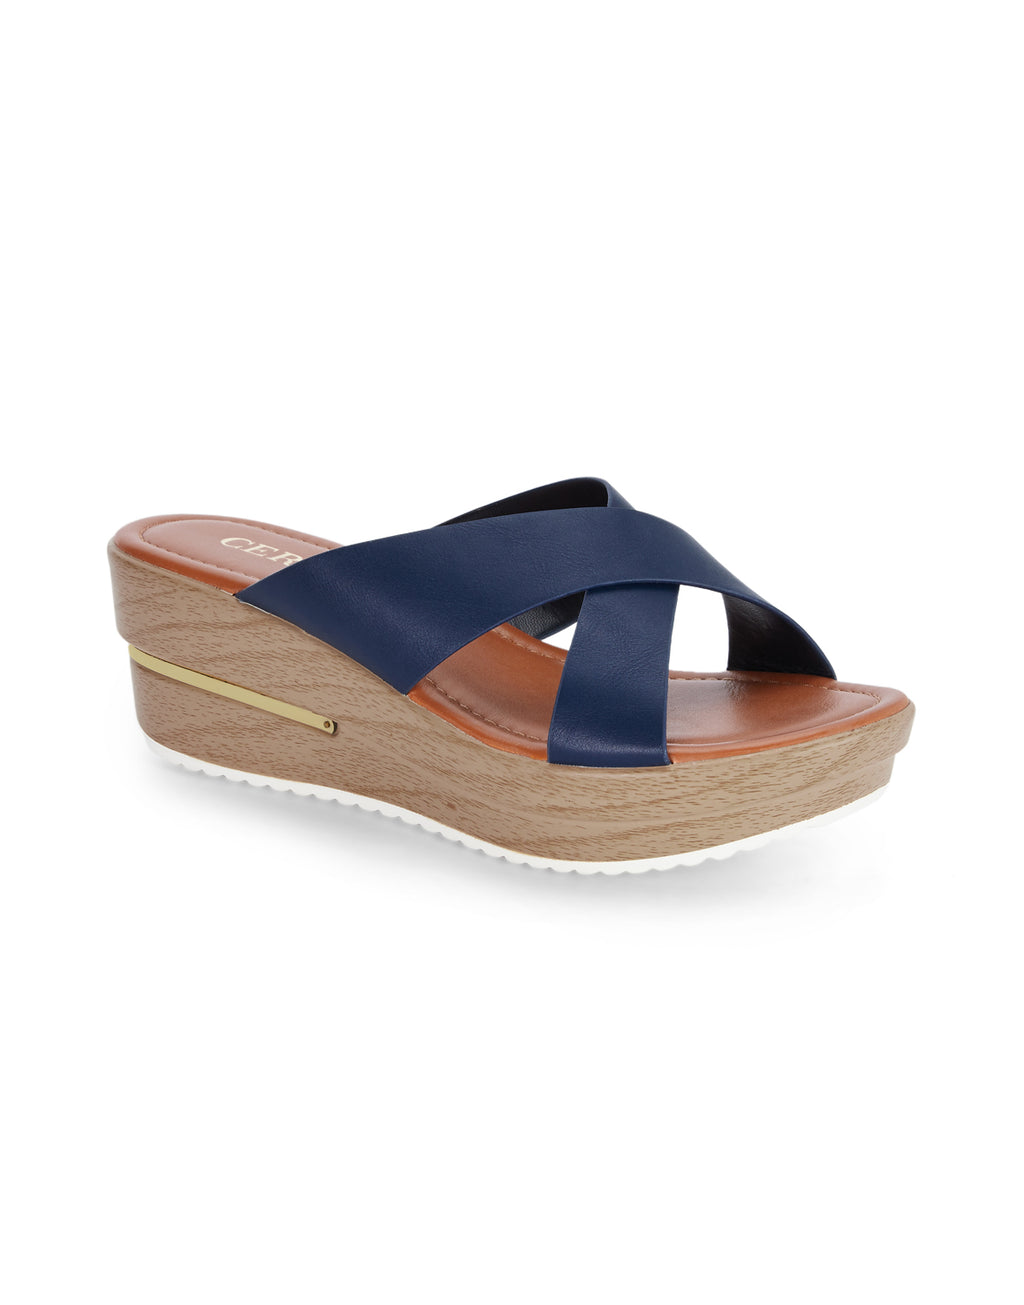 Madeline Graceful Navy Sandals